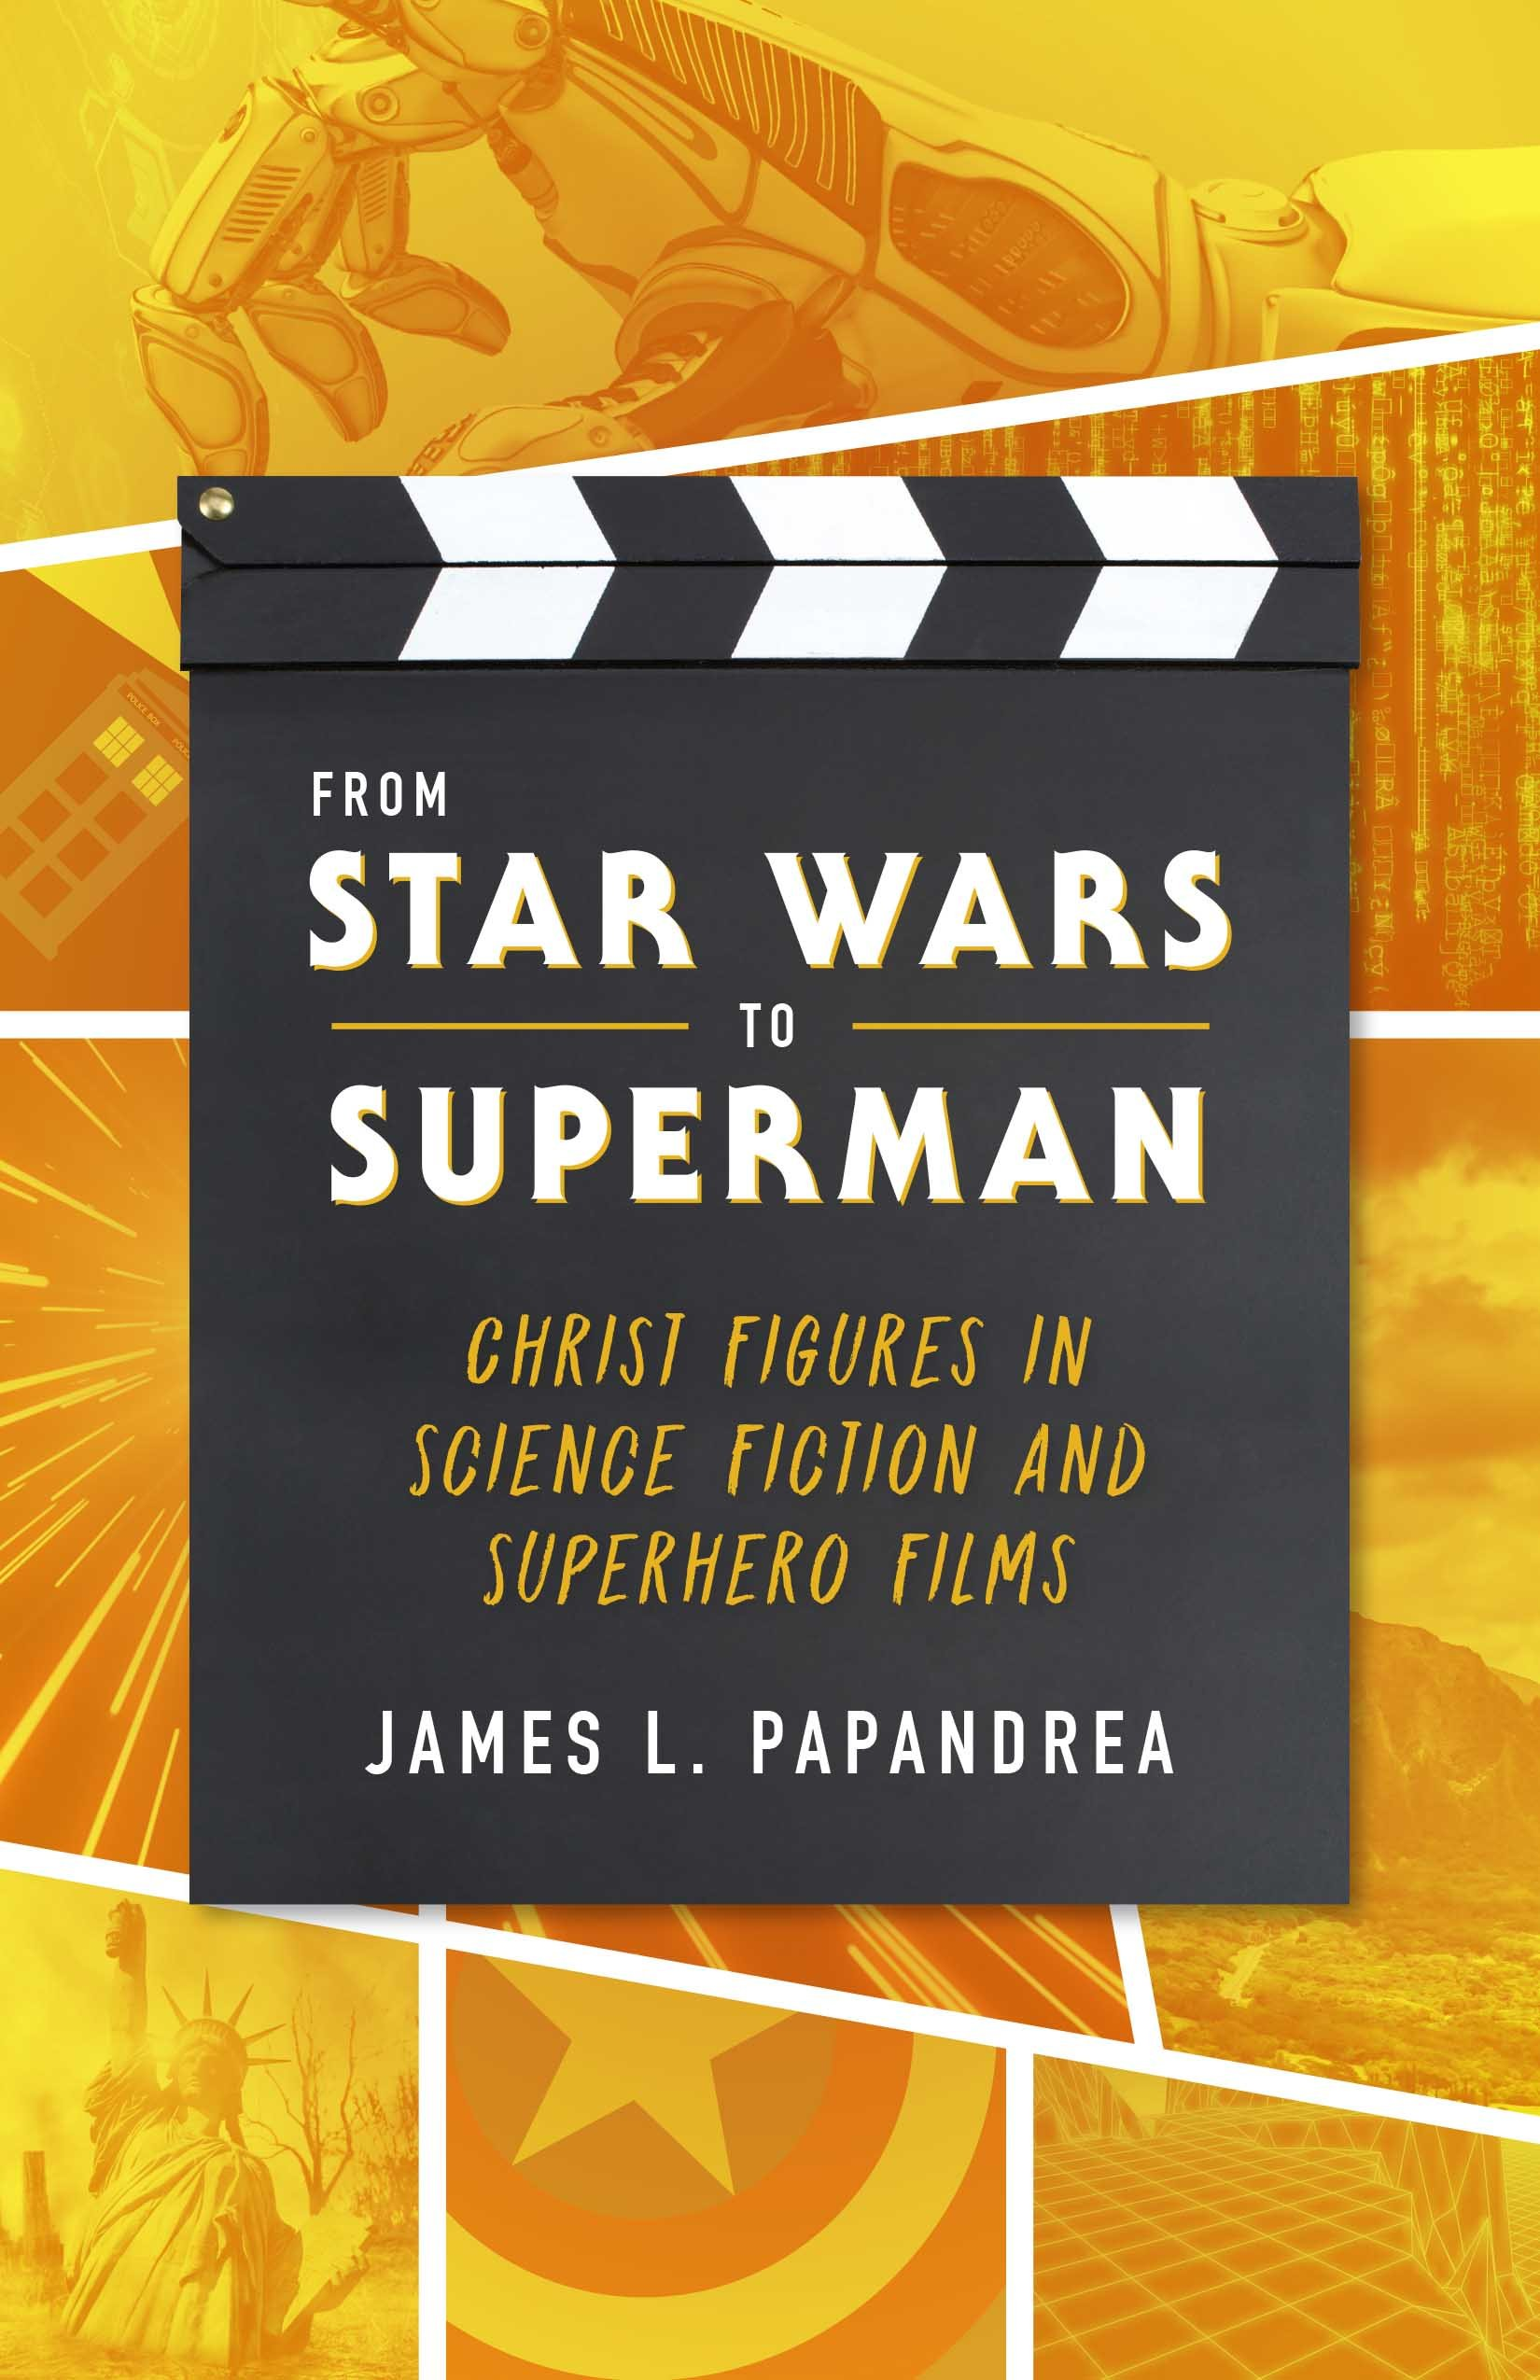 From Star Wars to Superman: Christ and Salvation in Science Fiction and Superhero Films